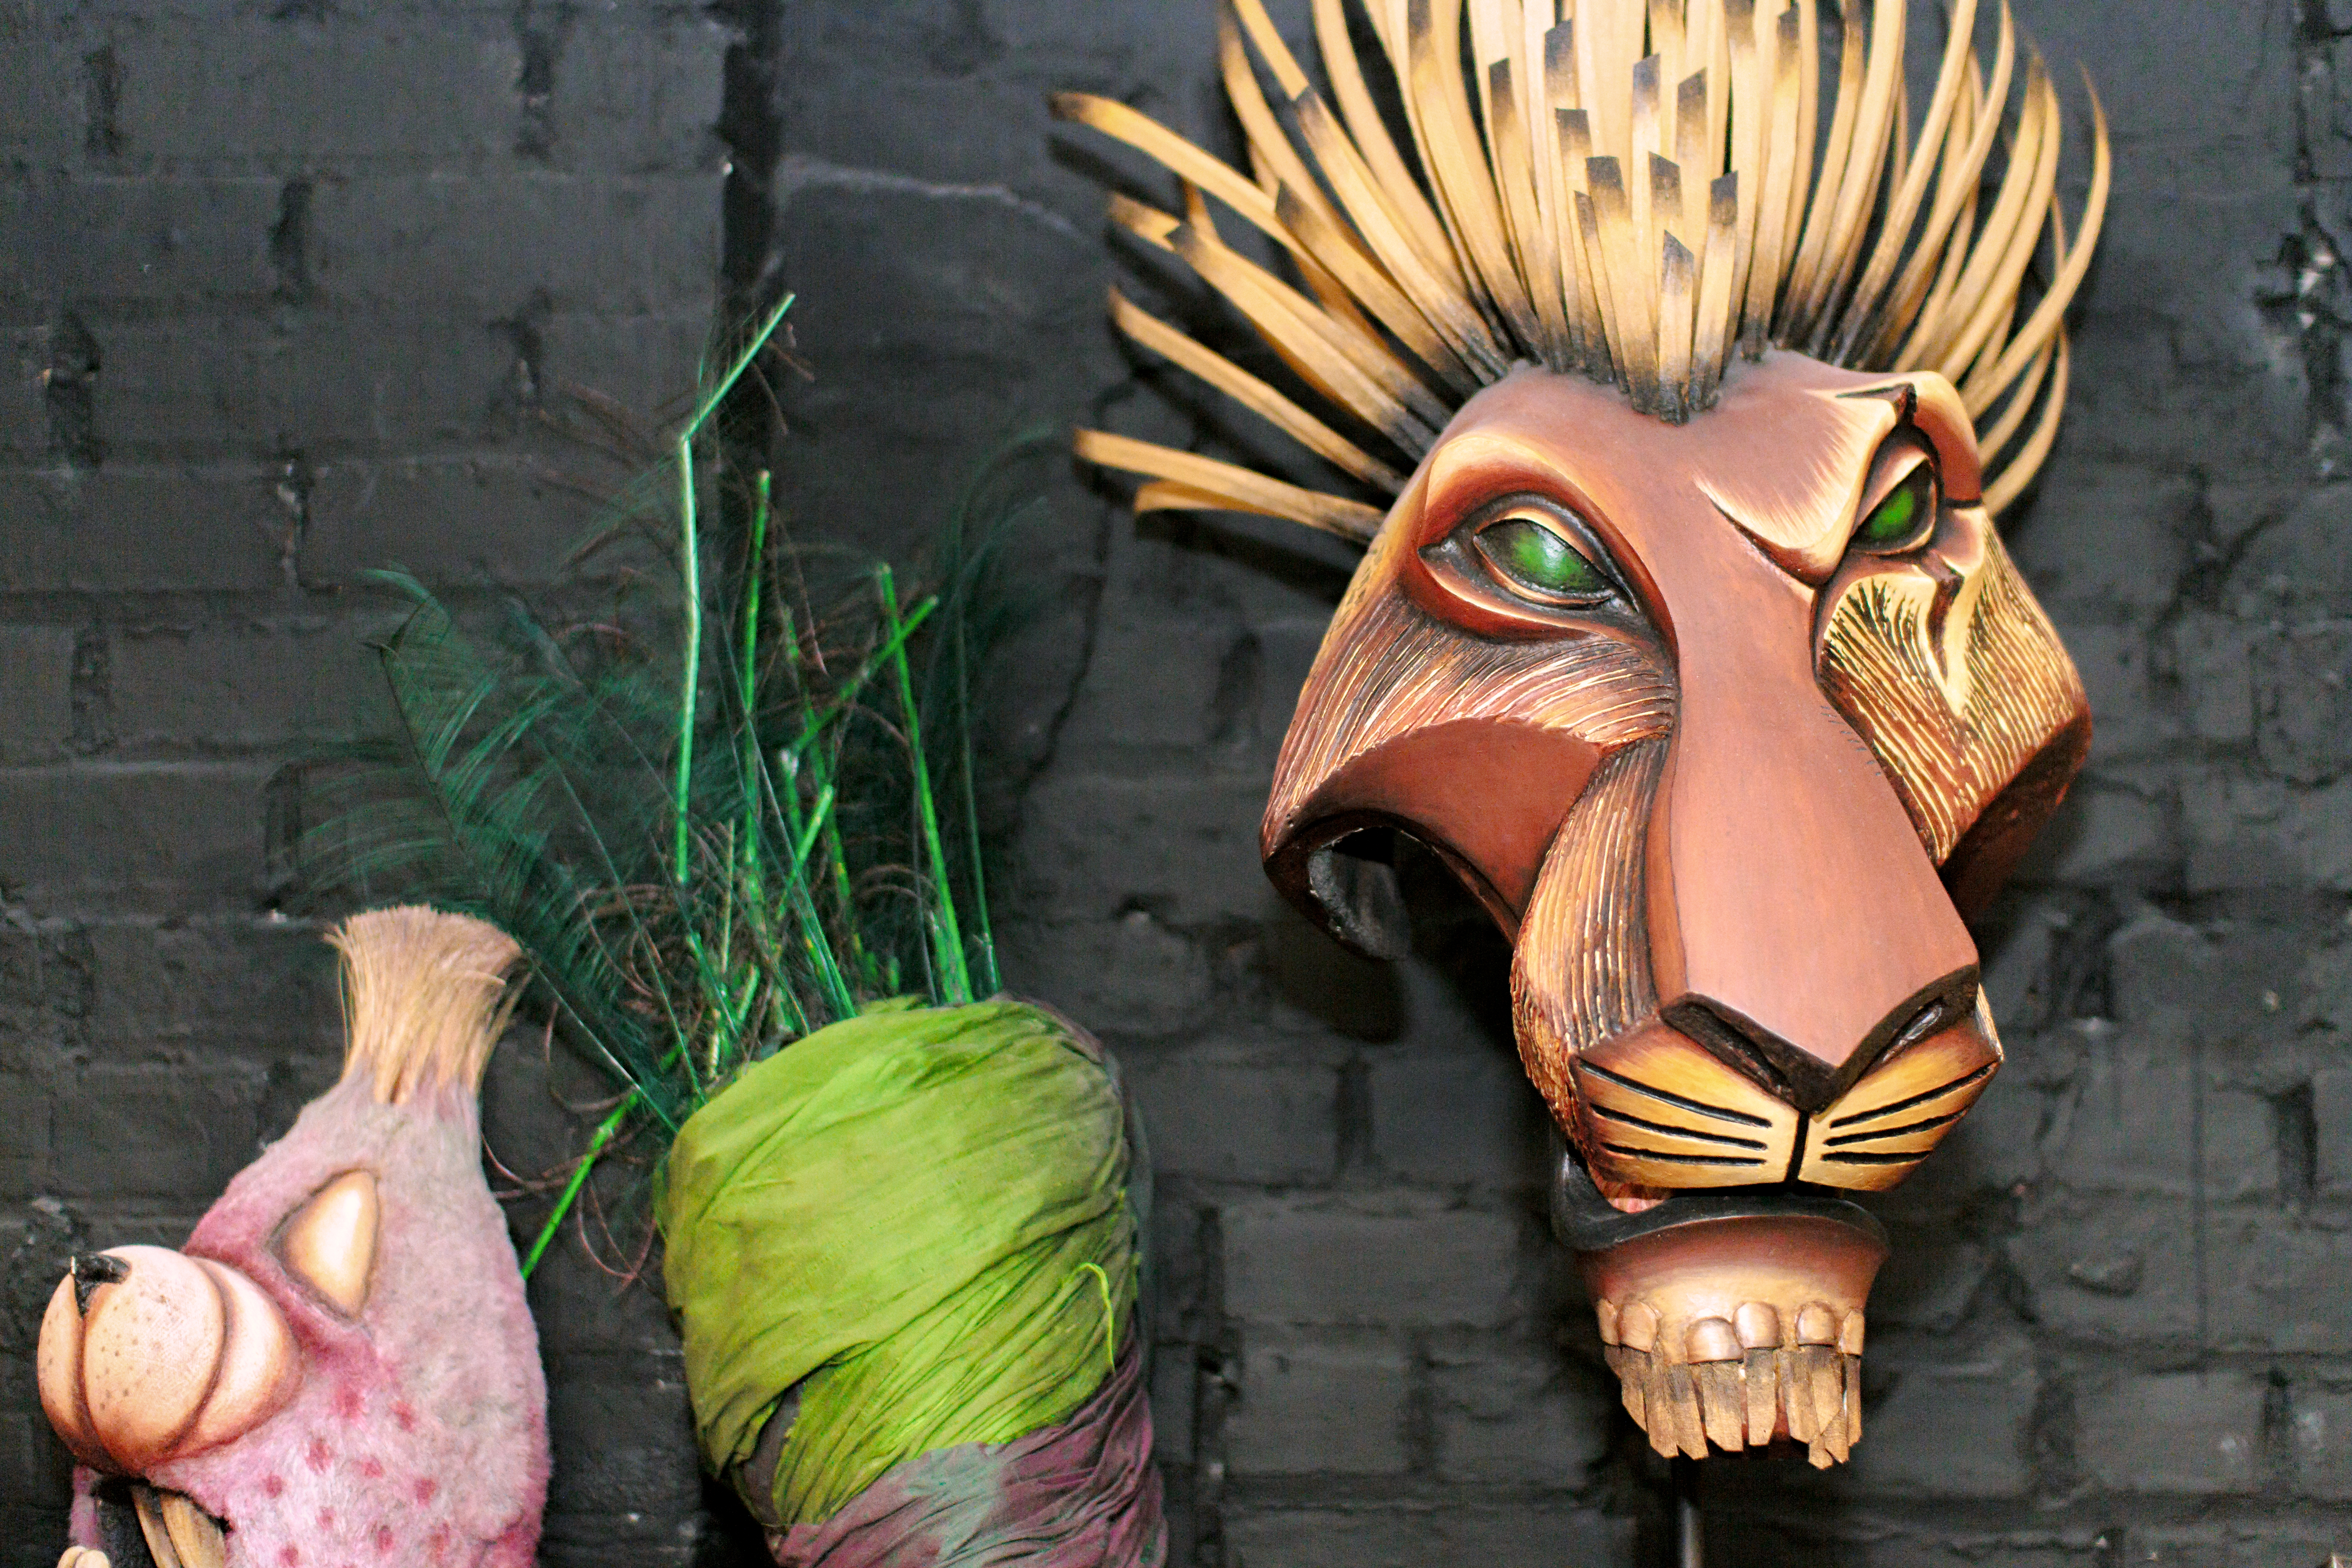 Scar from the Lion King is a favorite prop for many of our young visitors